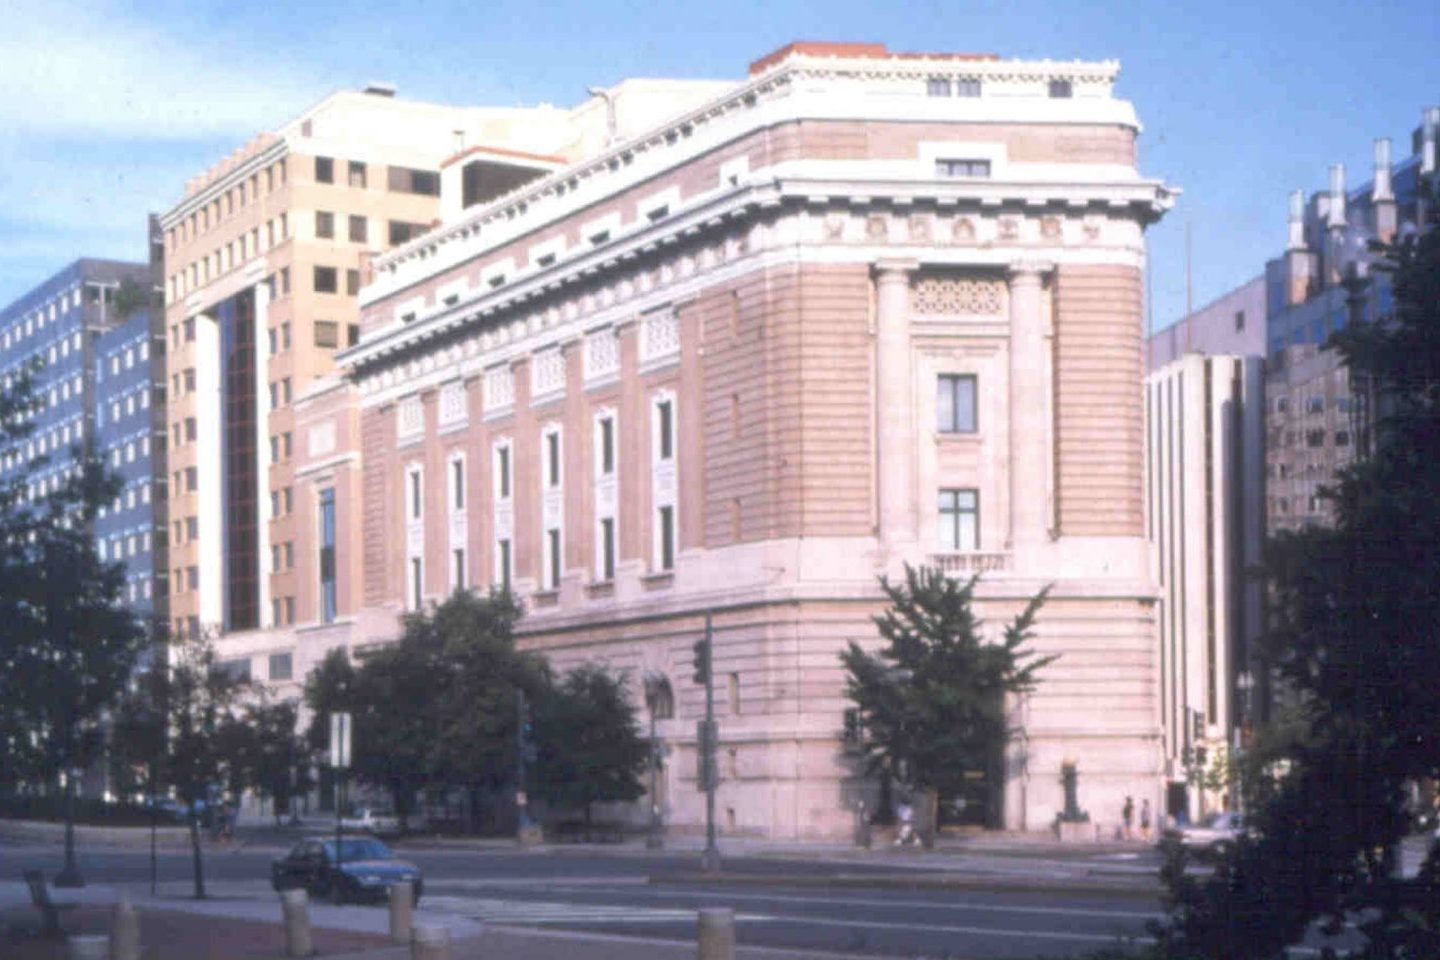 An older color photograph of the building exterior with trees in the foreground.